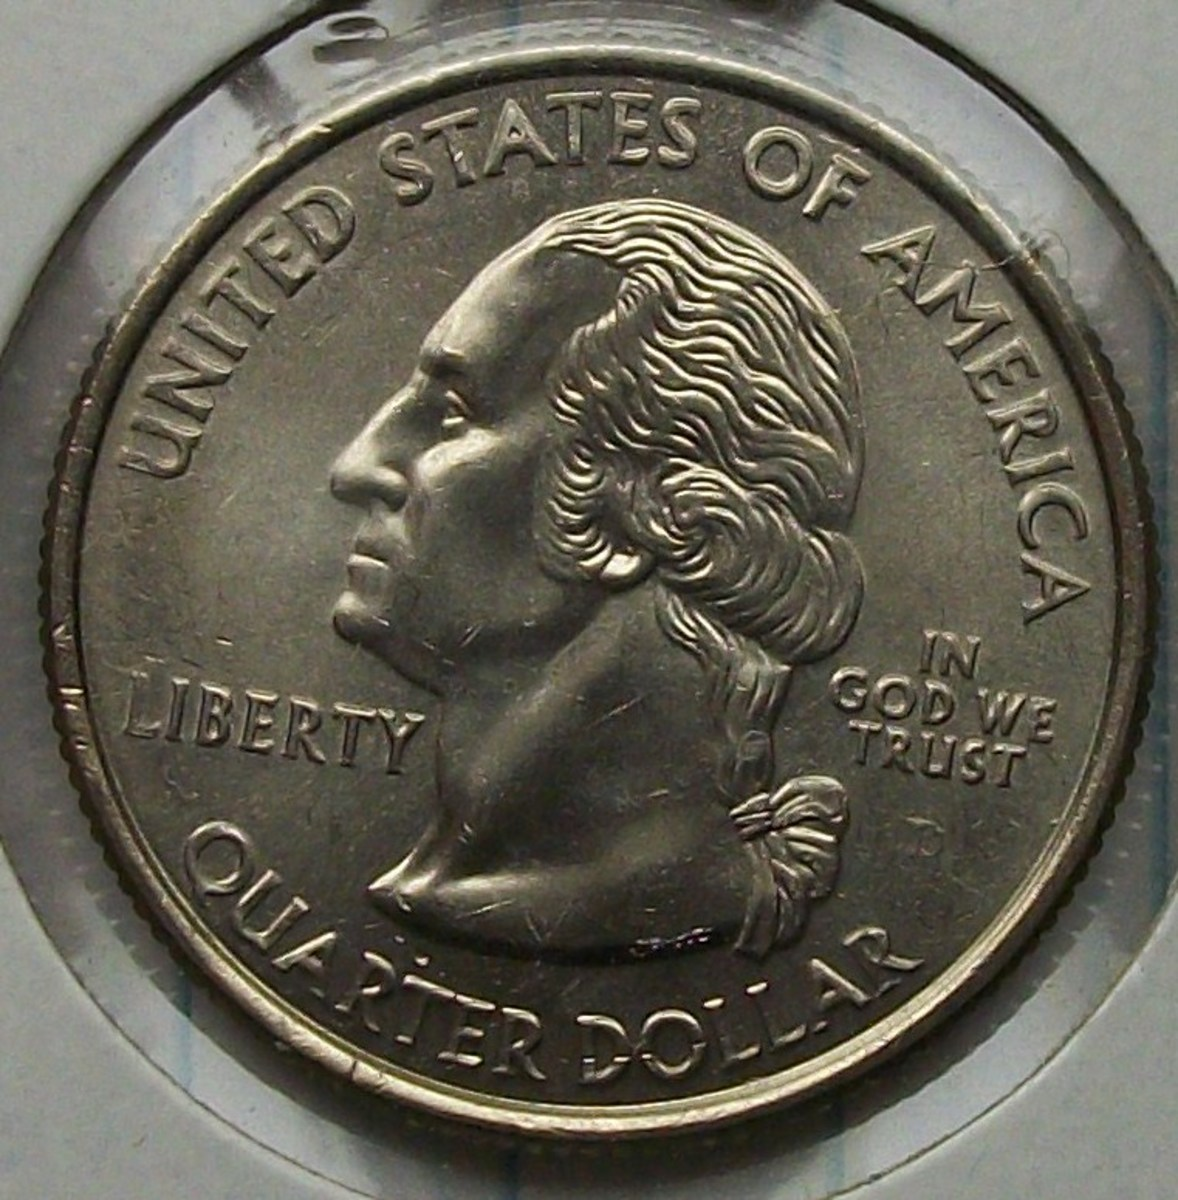 Obverse of the 2008D Oklahoma Statehood Quarter Fading D mint mark most likely caused by die polishing.